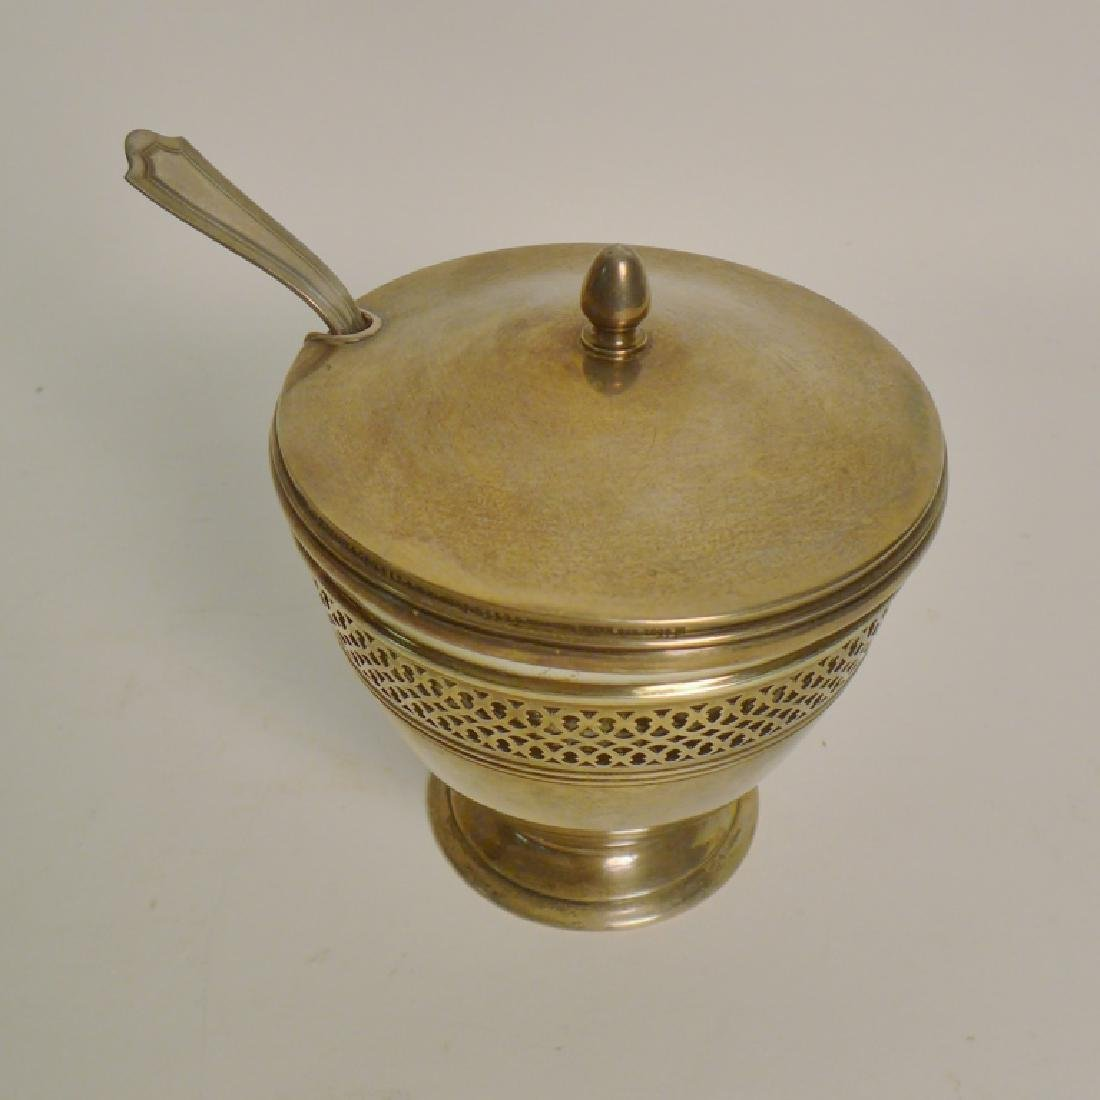 Tiffany & Co Sterling Silver Covered Sugar Bowl - 9